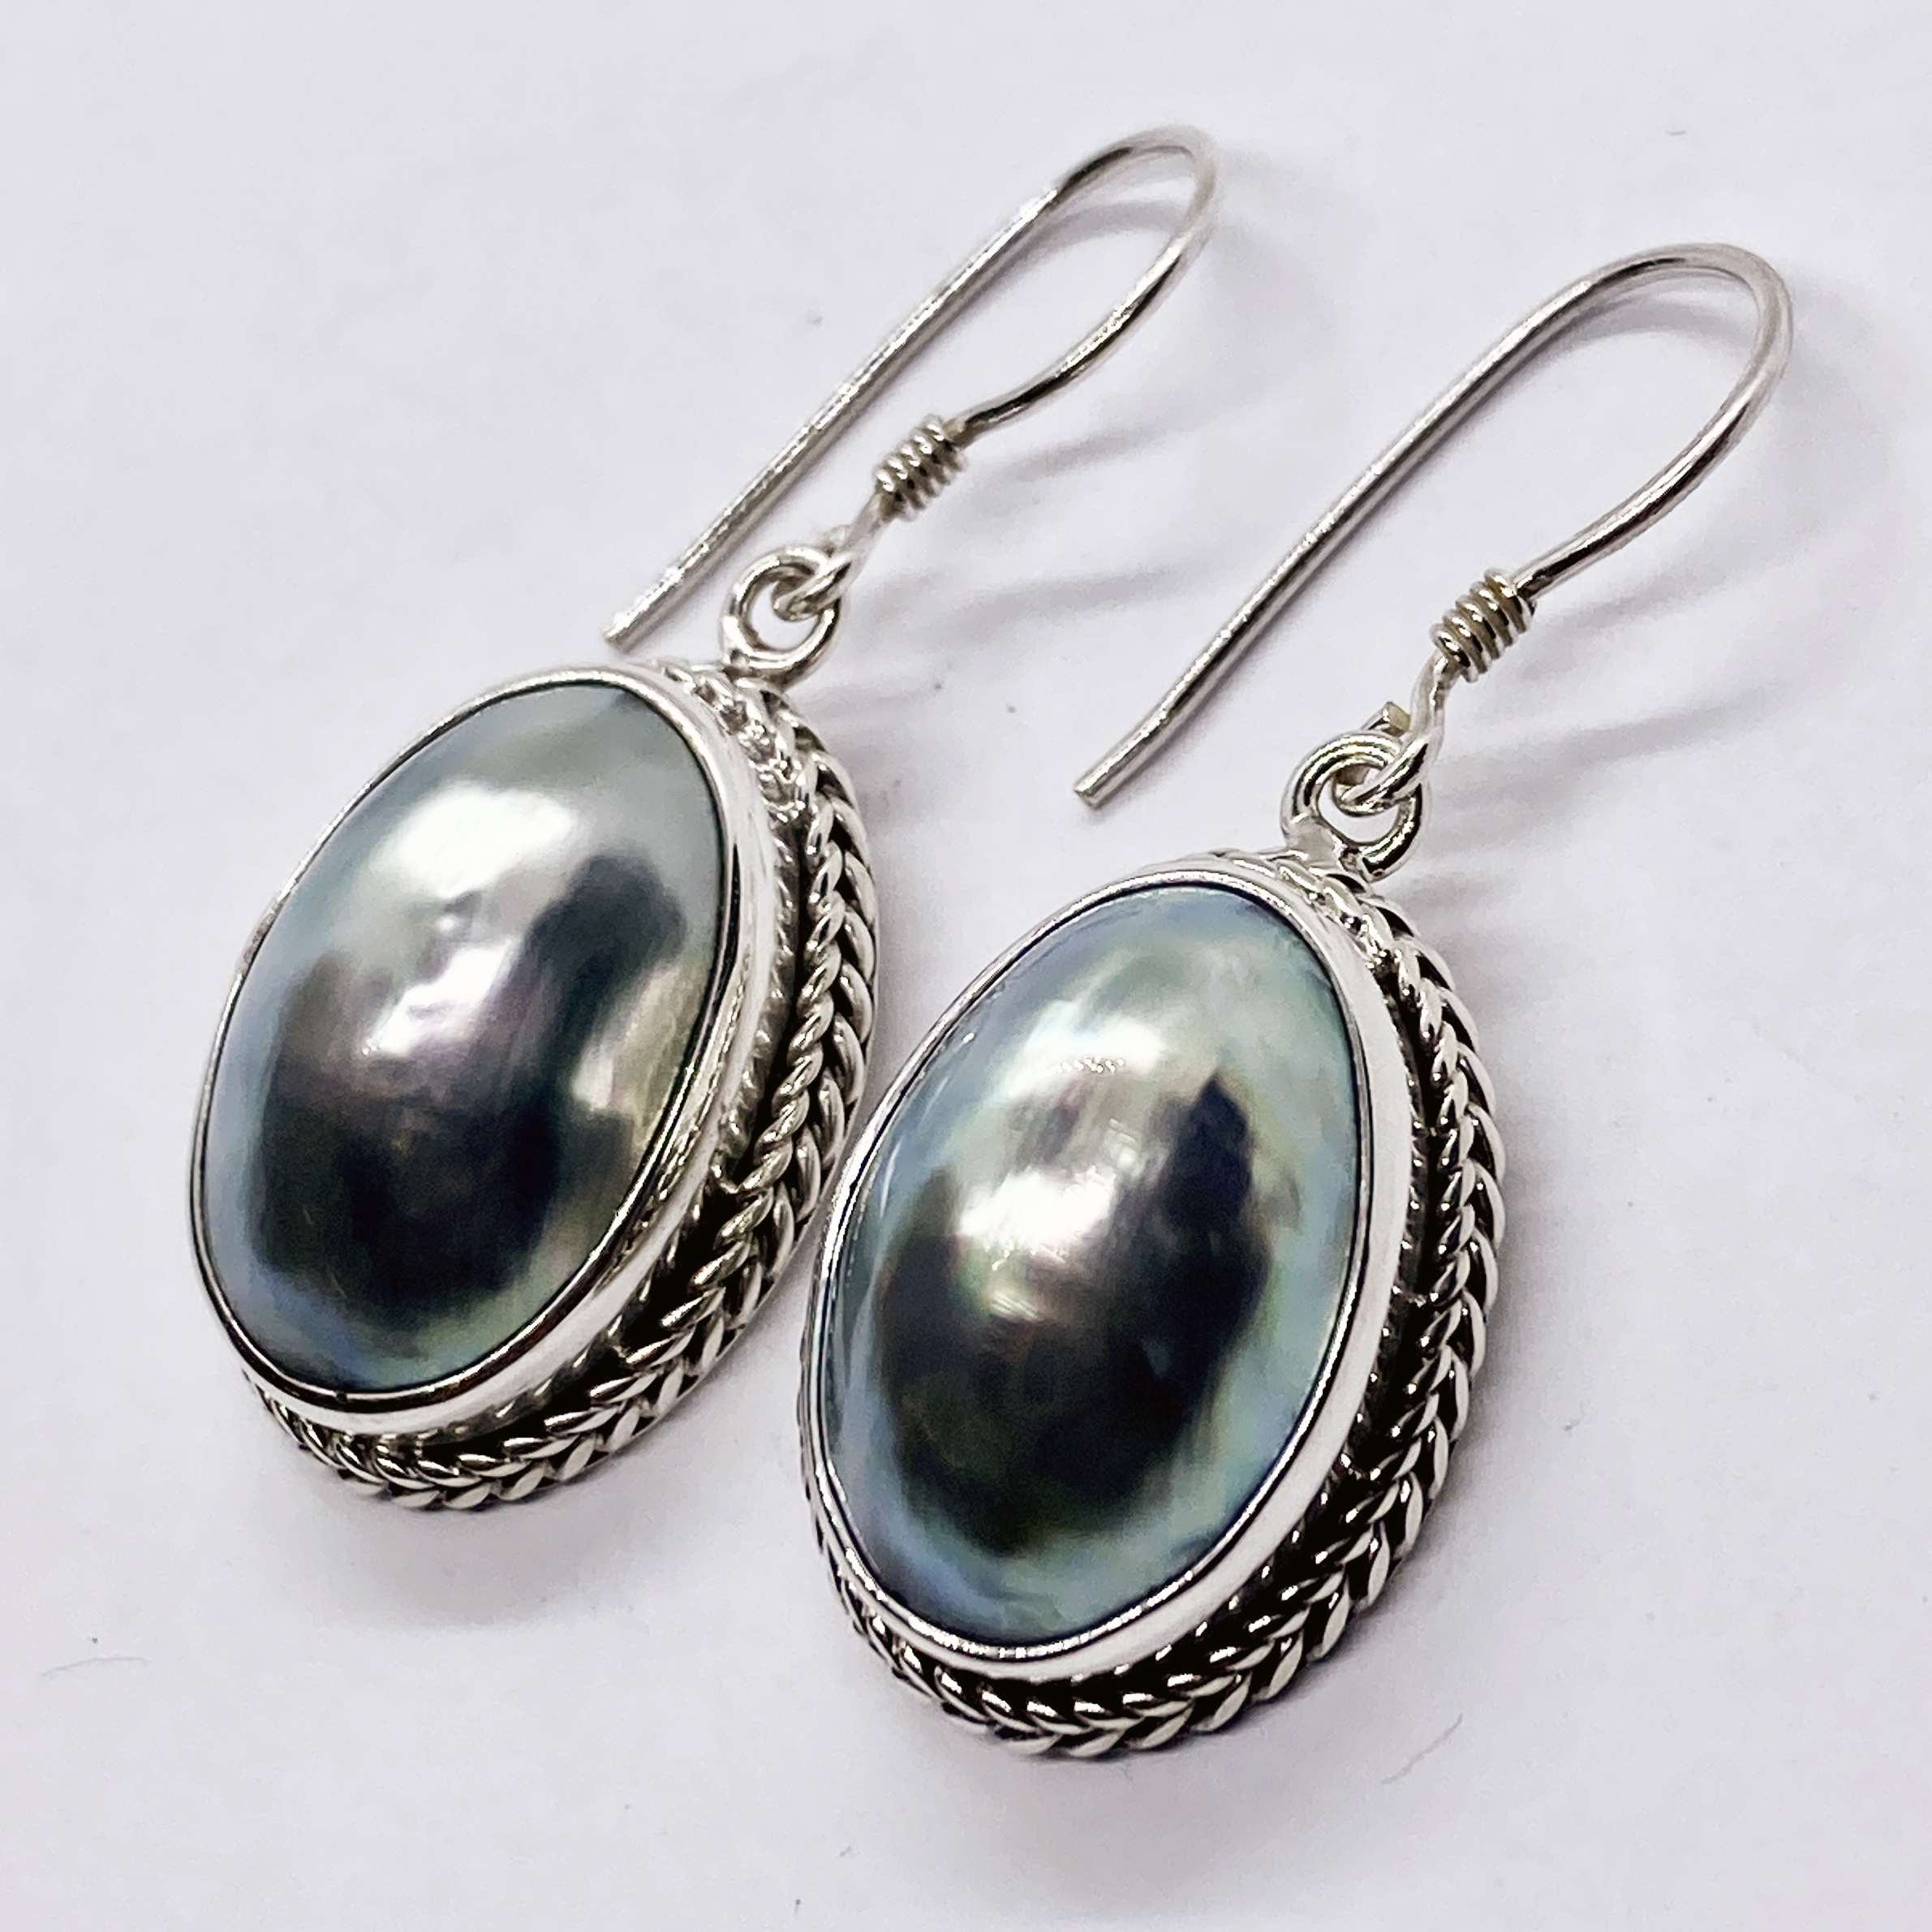 (HANDMADE 925 BALI SILVER EARRINGS WITH NAUTILUS COKLY SHELL)